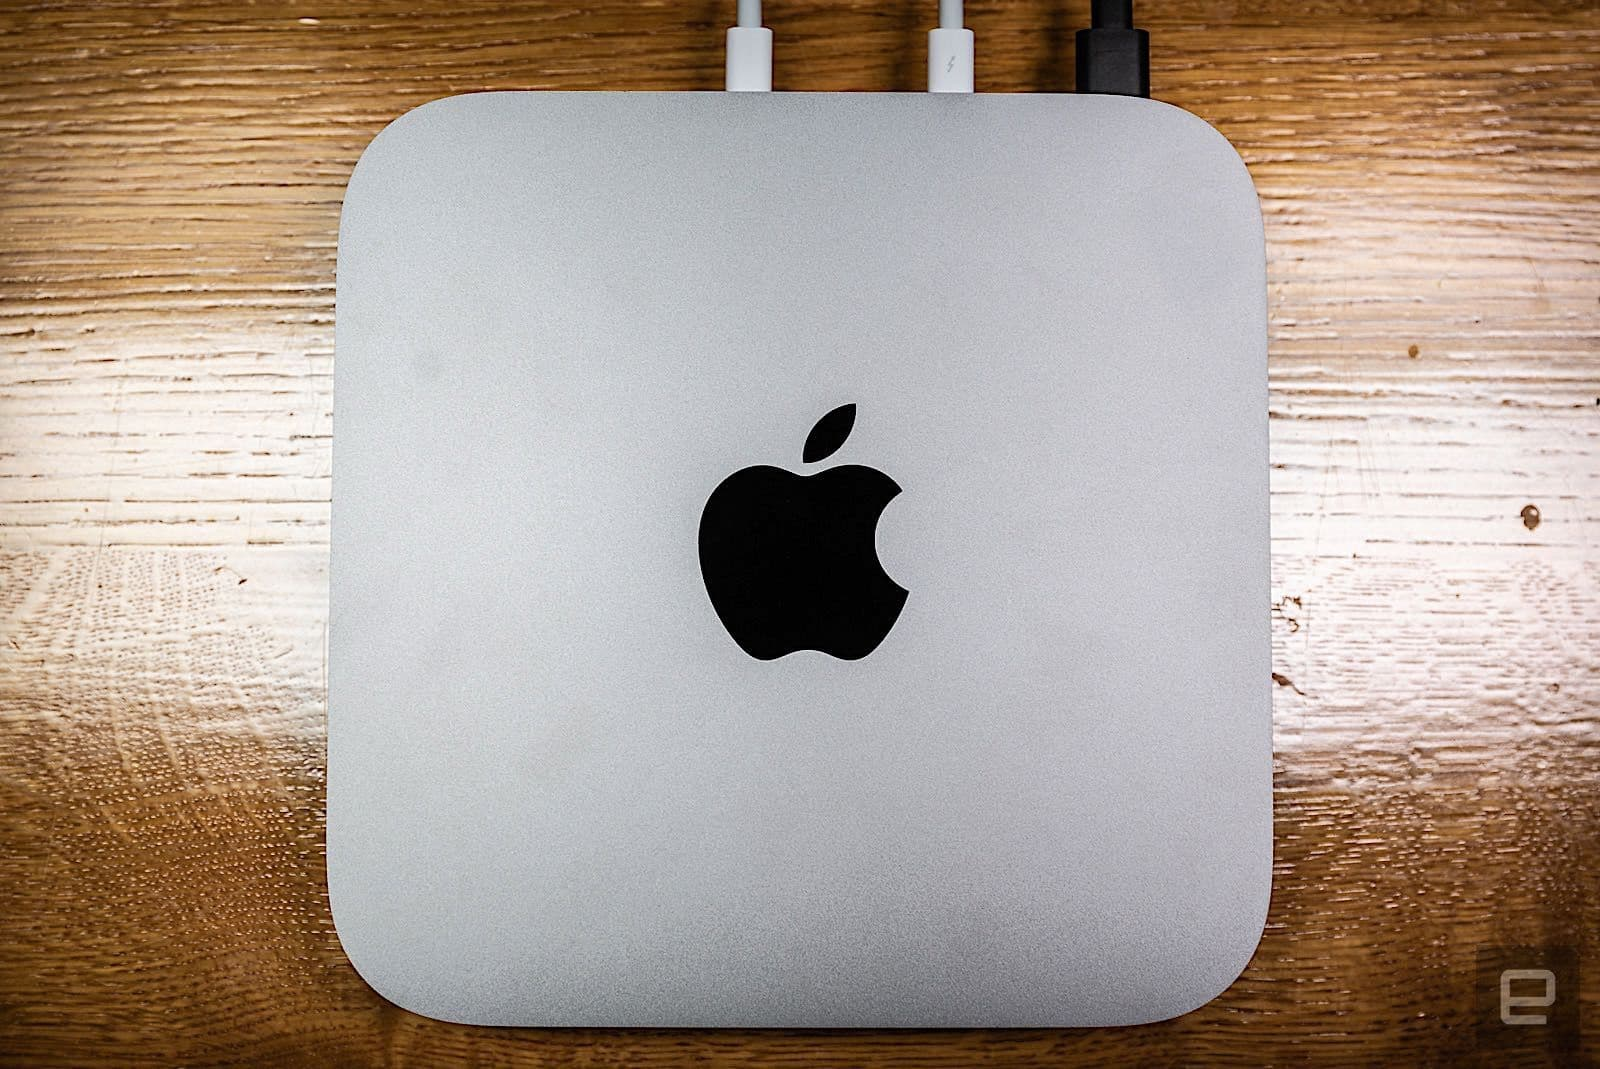 Is the latest Apple Mac Mini a worthy challenger?